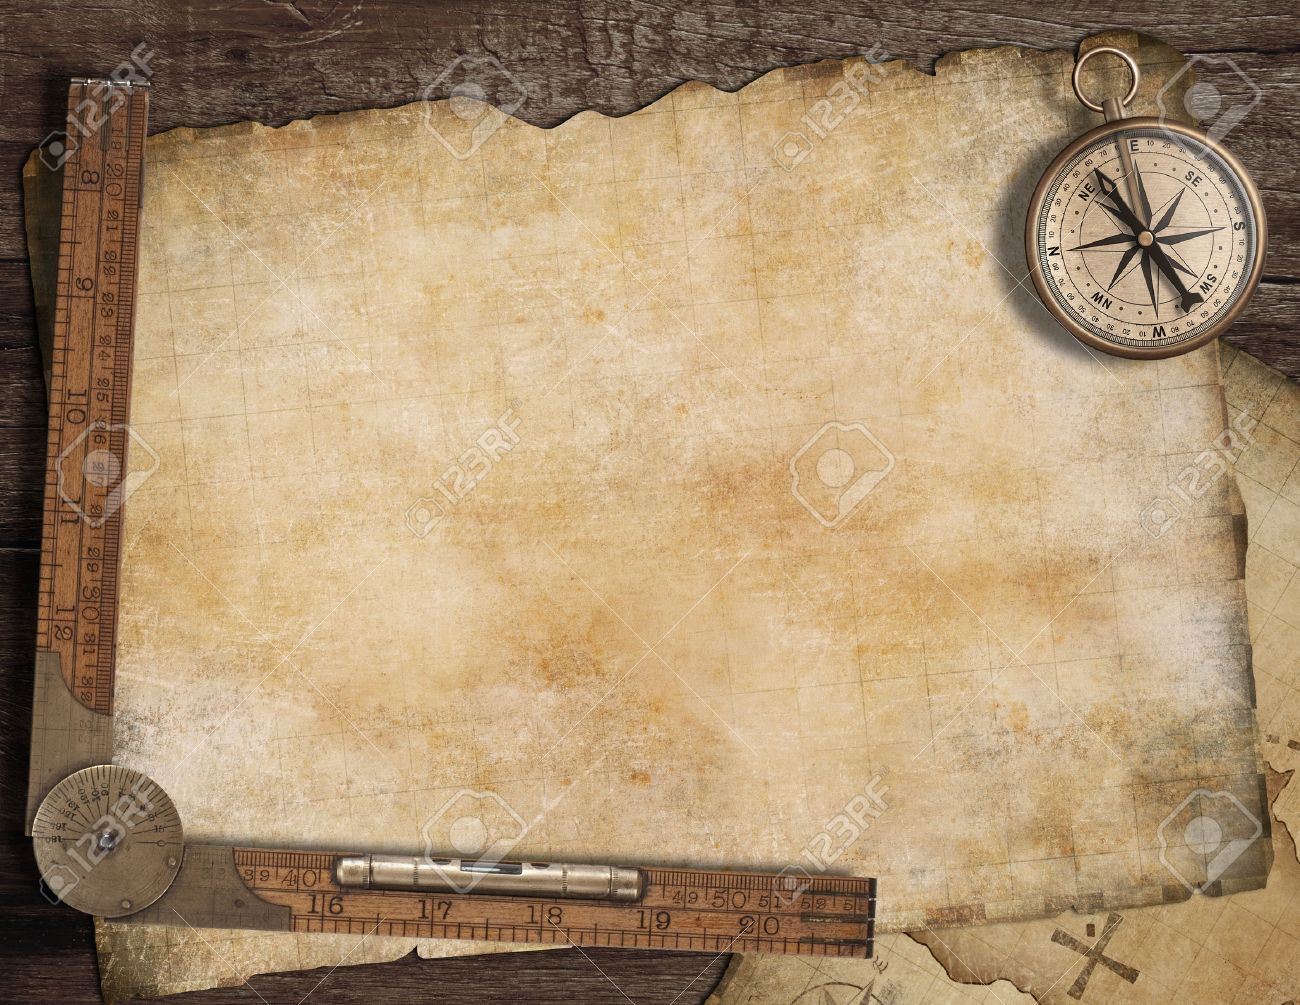 Blank Treasure Map Blank Treasure Map Background With, Old Compass And Ruler